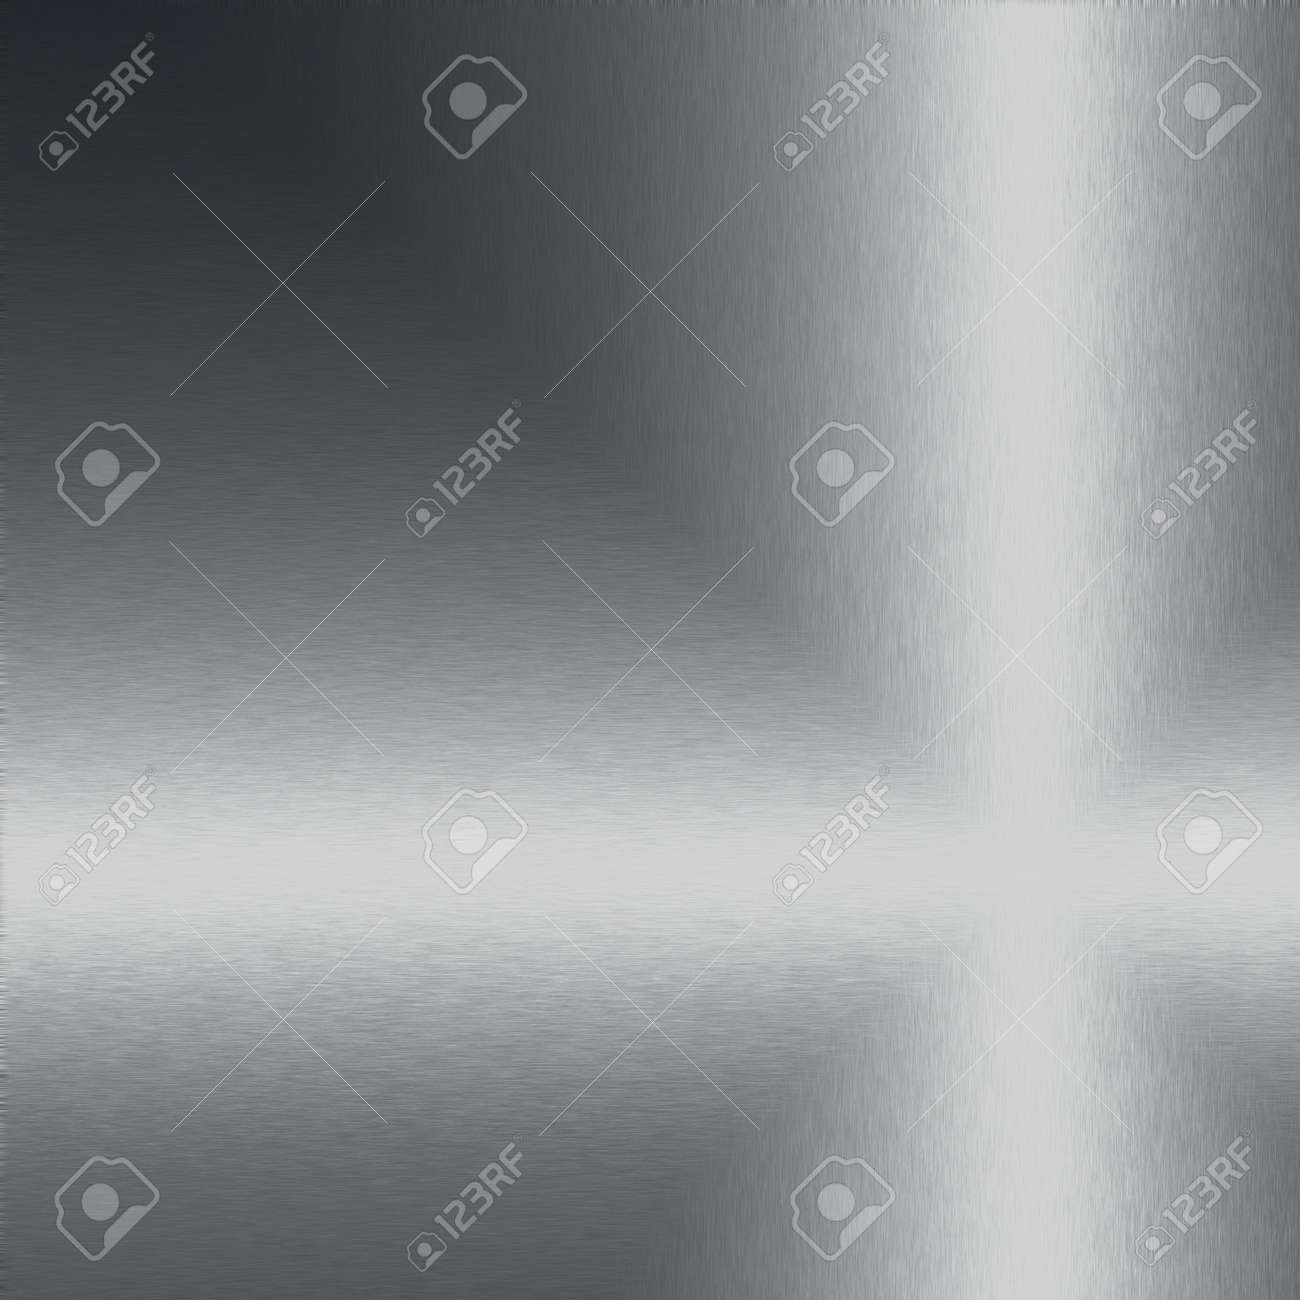 aluminum abstract background, silver metal texture Stock Photo - 21967359